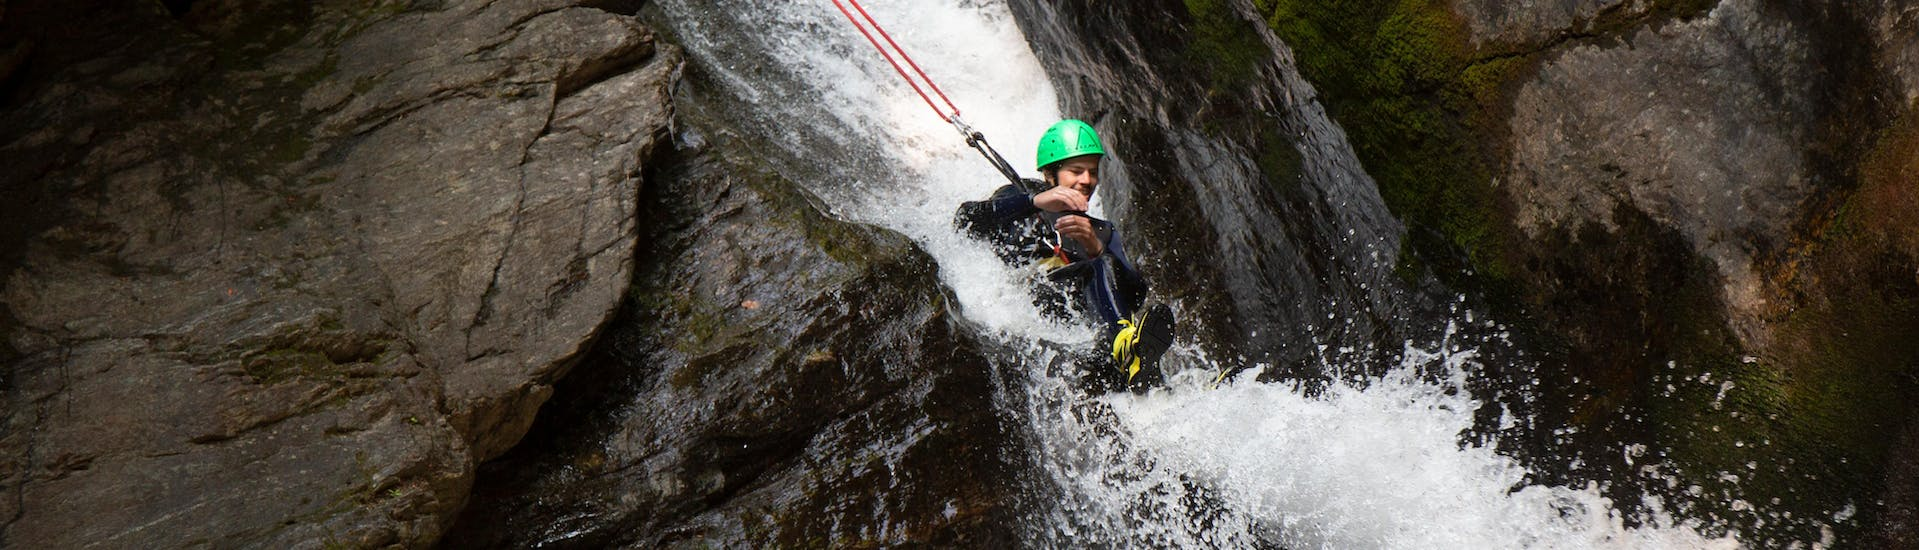 """Canyoning """"Wonderland"""" for Beginners - Beginner's Canyon"""